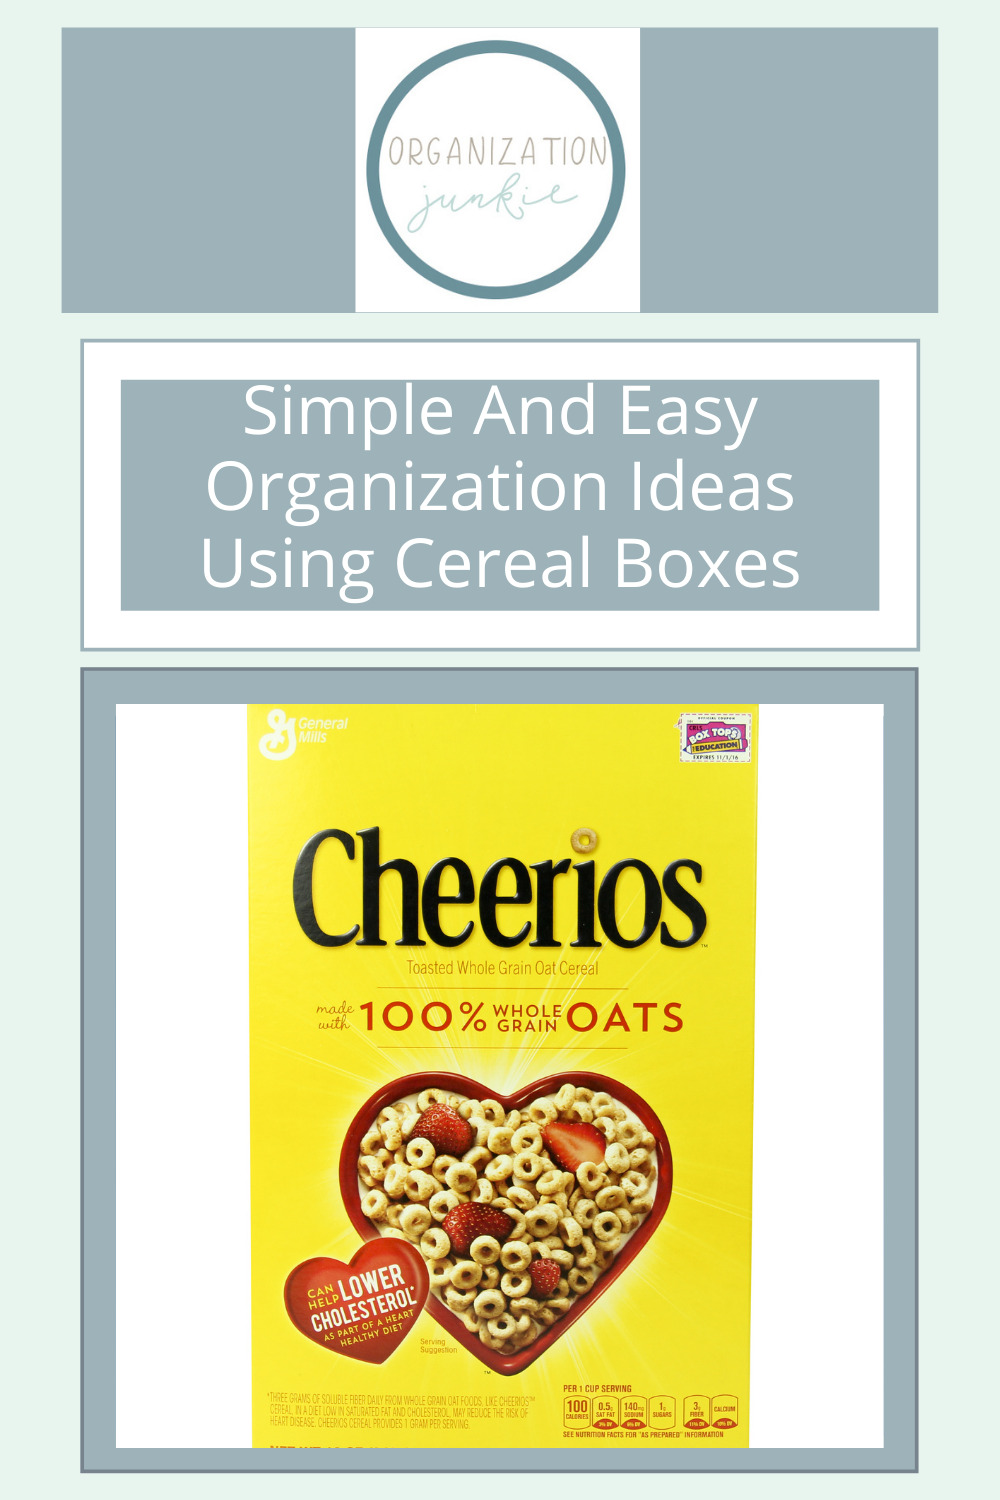 Organizationjunkie.com makes decluttering a breeze! Check out the most creative ideas for tackling the messes in your life. Save your cereal boxes and try out these genius organization ideas.